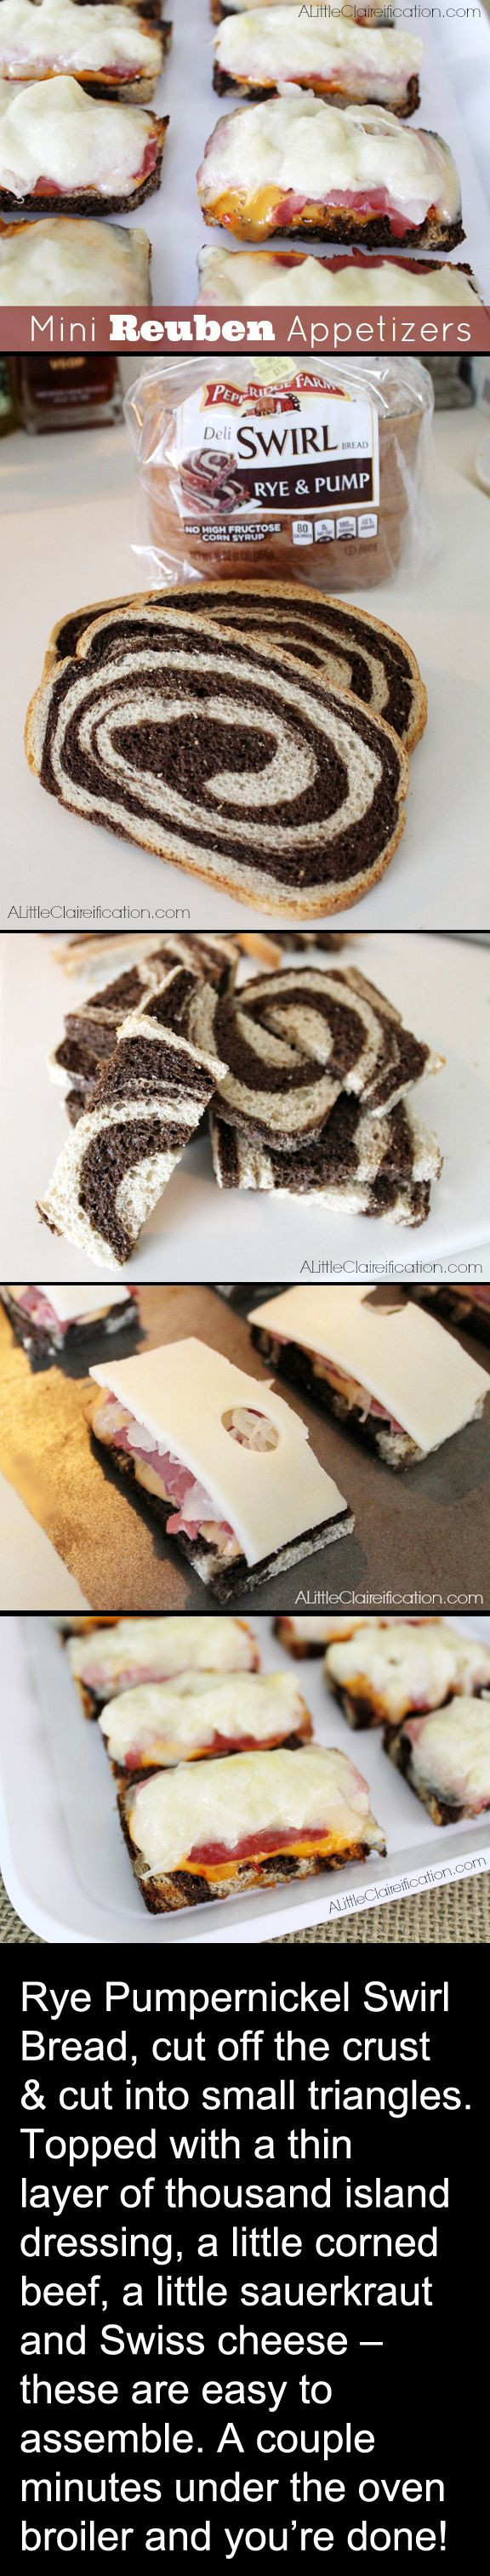 RECIPE: Mini Reuben Appetizers with Black & White bread| Perfect Party Food. Beware the Birds! Black & White Theme Poe & Hitchcock Halloween Party Menu Ideas